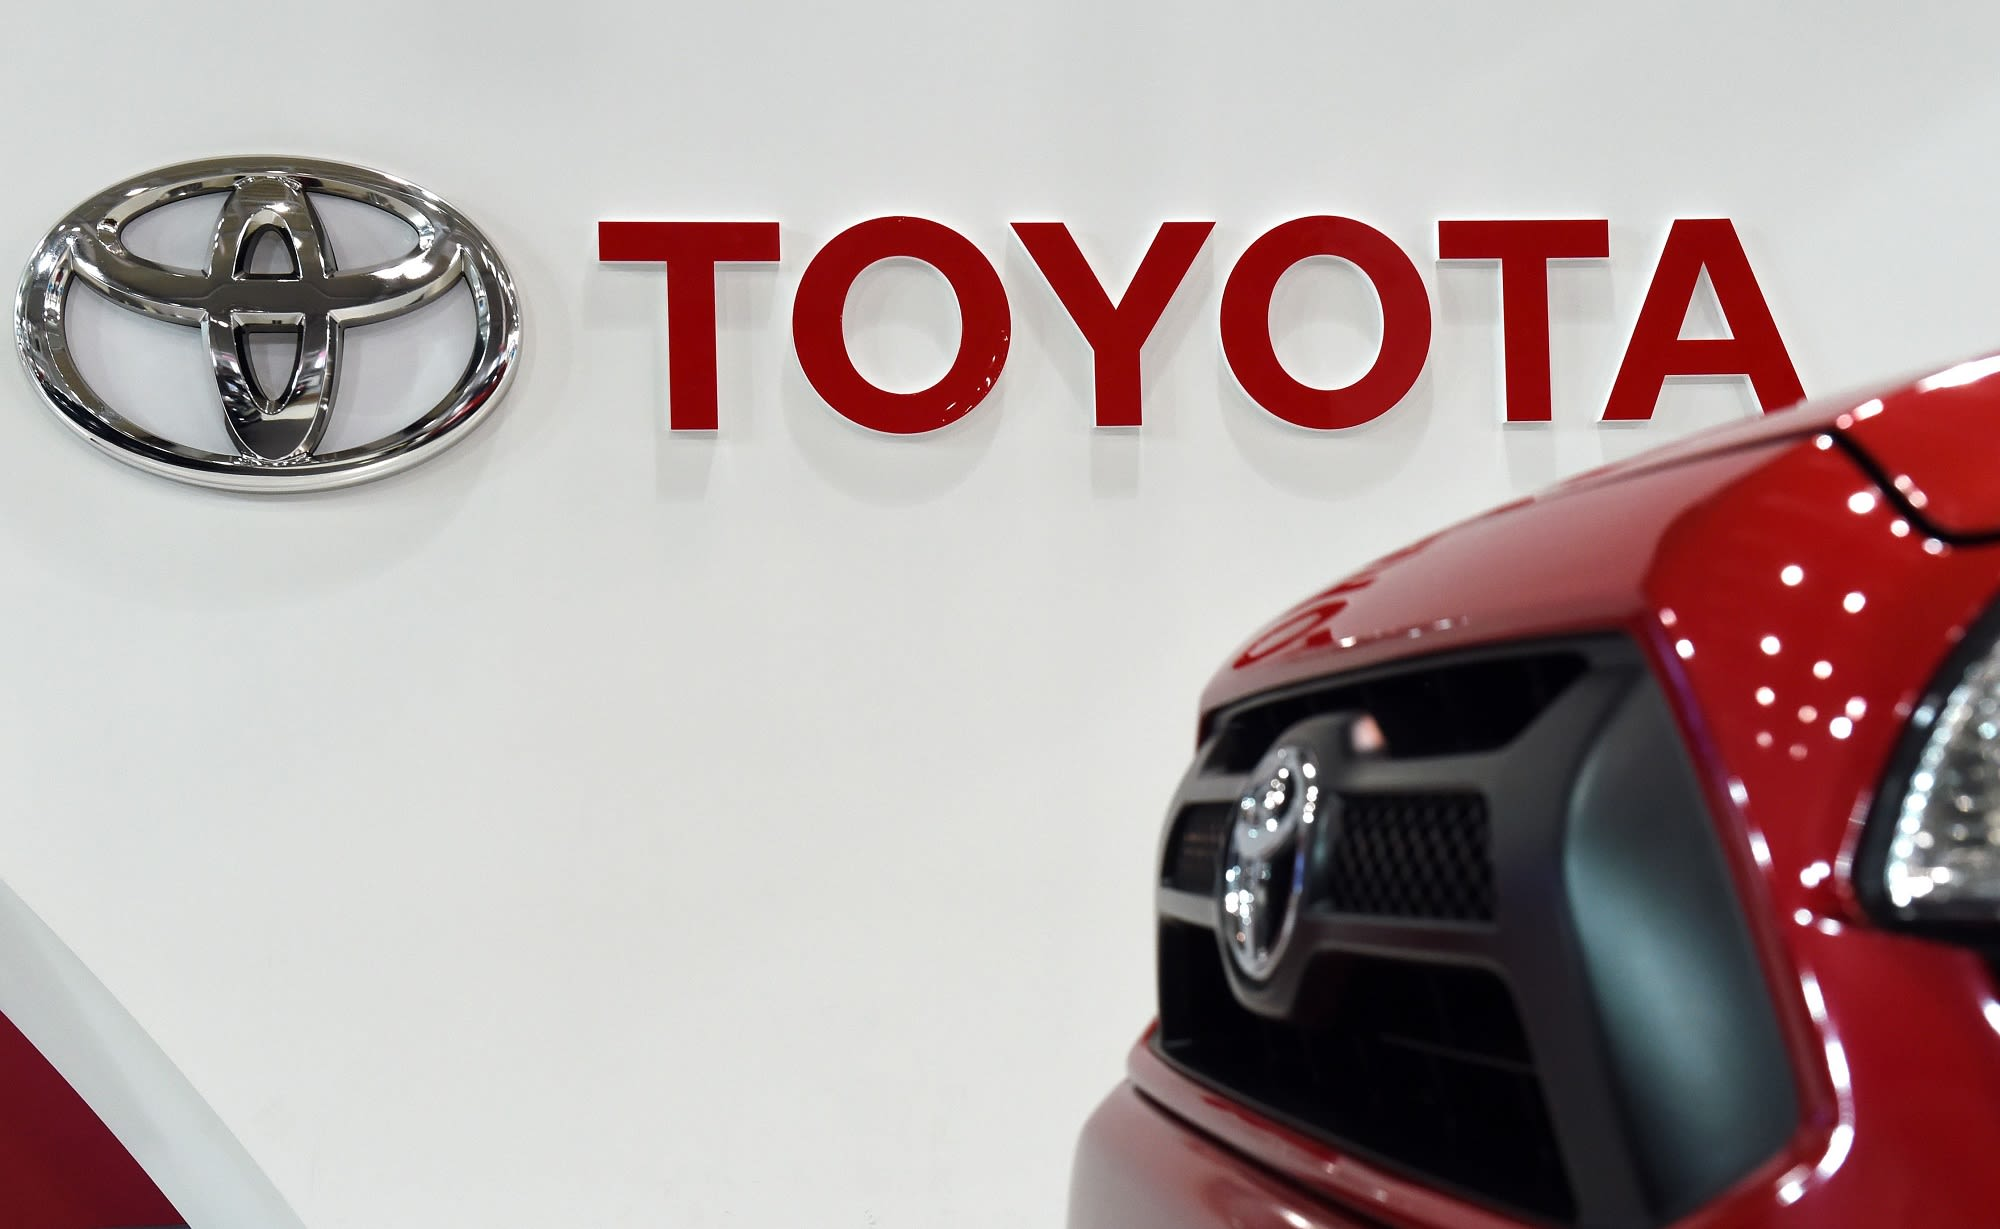 Toyota says Trump tariff threat shows investments in US 'not welcomed'